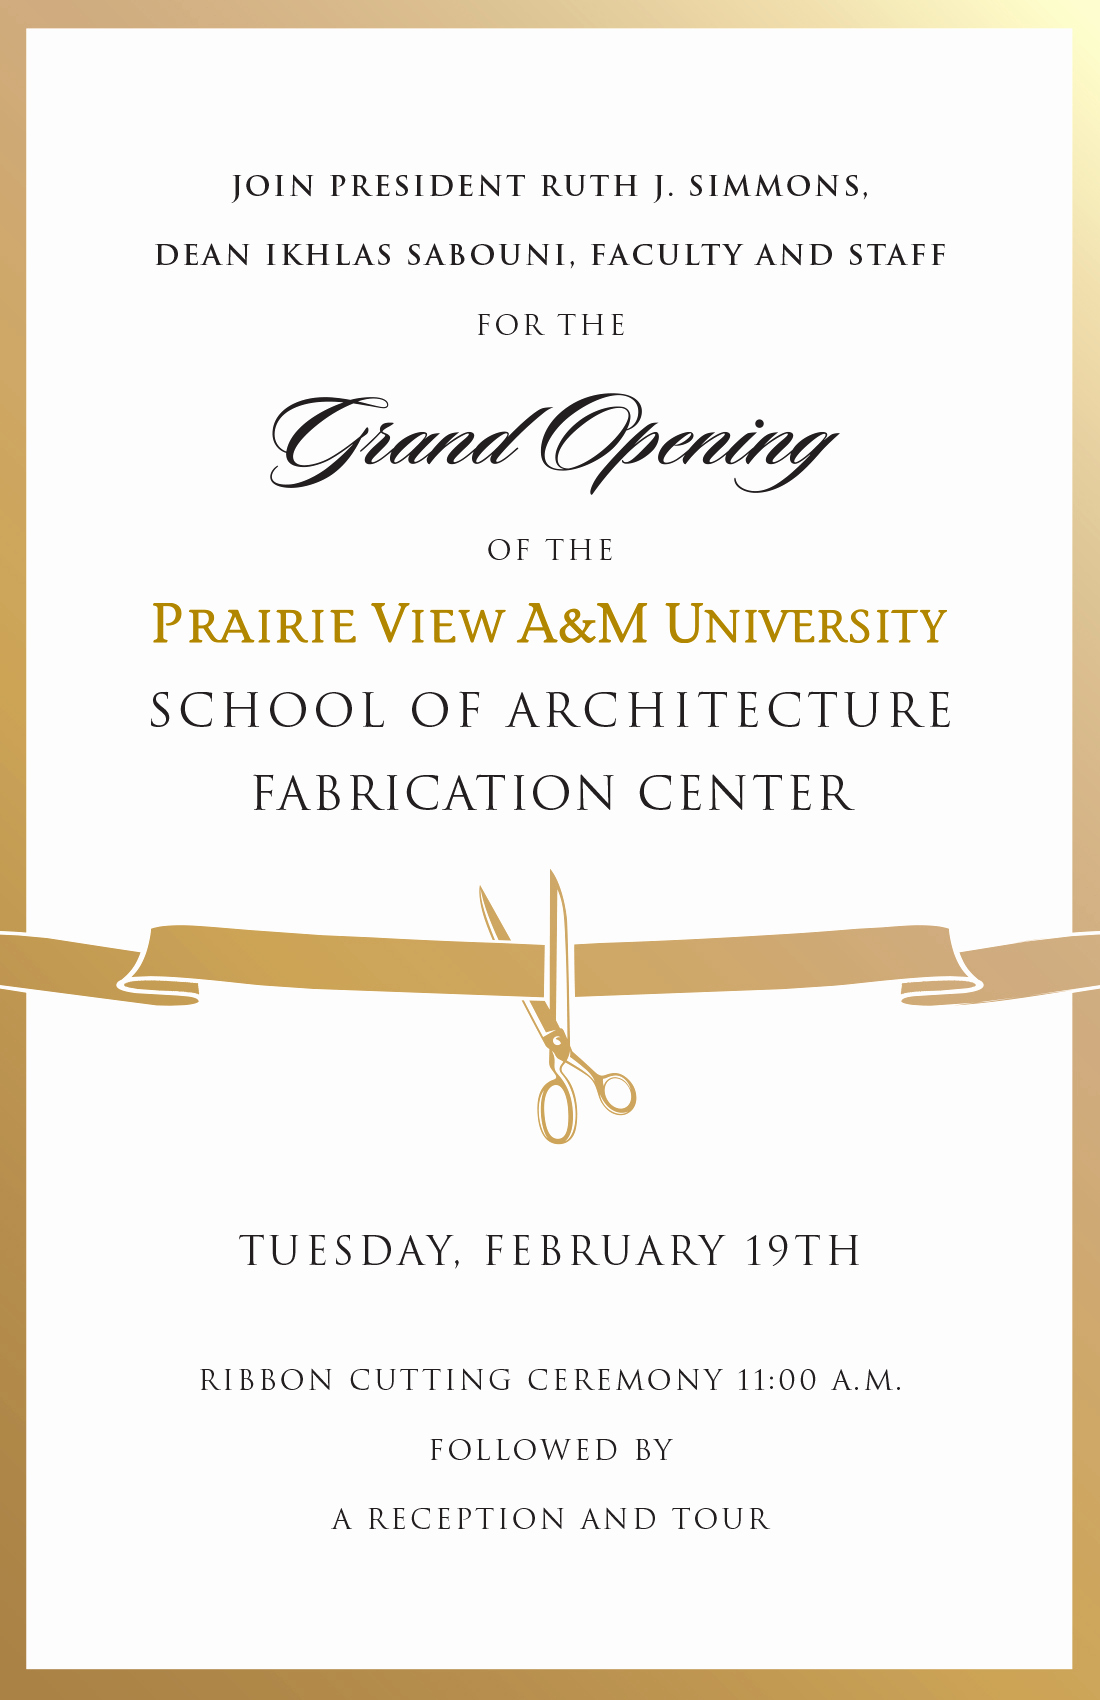 Ribbon Cutting Invitation Templates Beautiful Fabrication Center Ribbon Cutting Ceremony